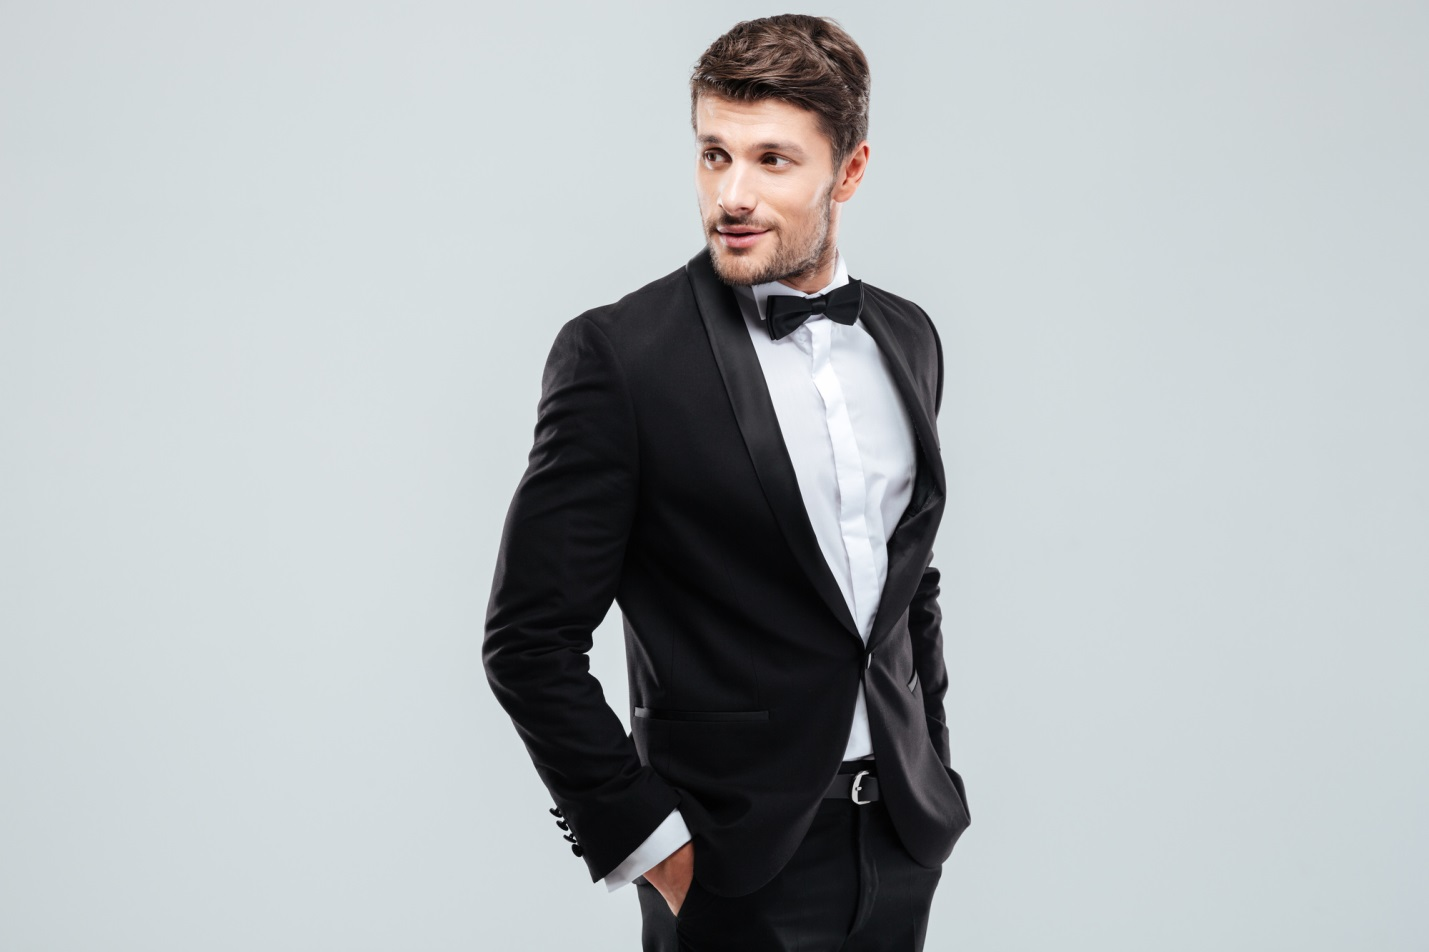 How to Wear a Tuxedo: A Beginner's Guide to Formal Dress Attire